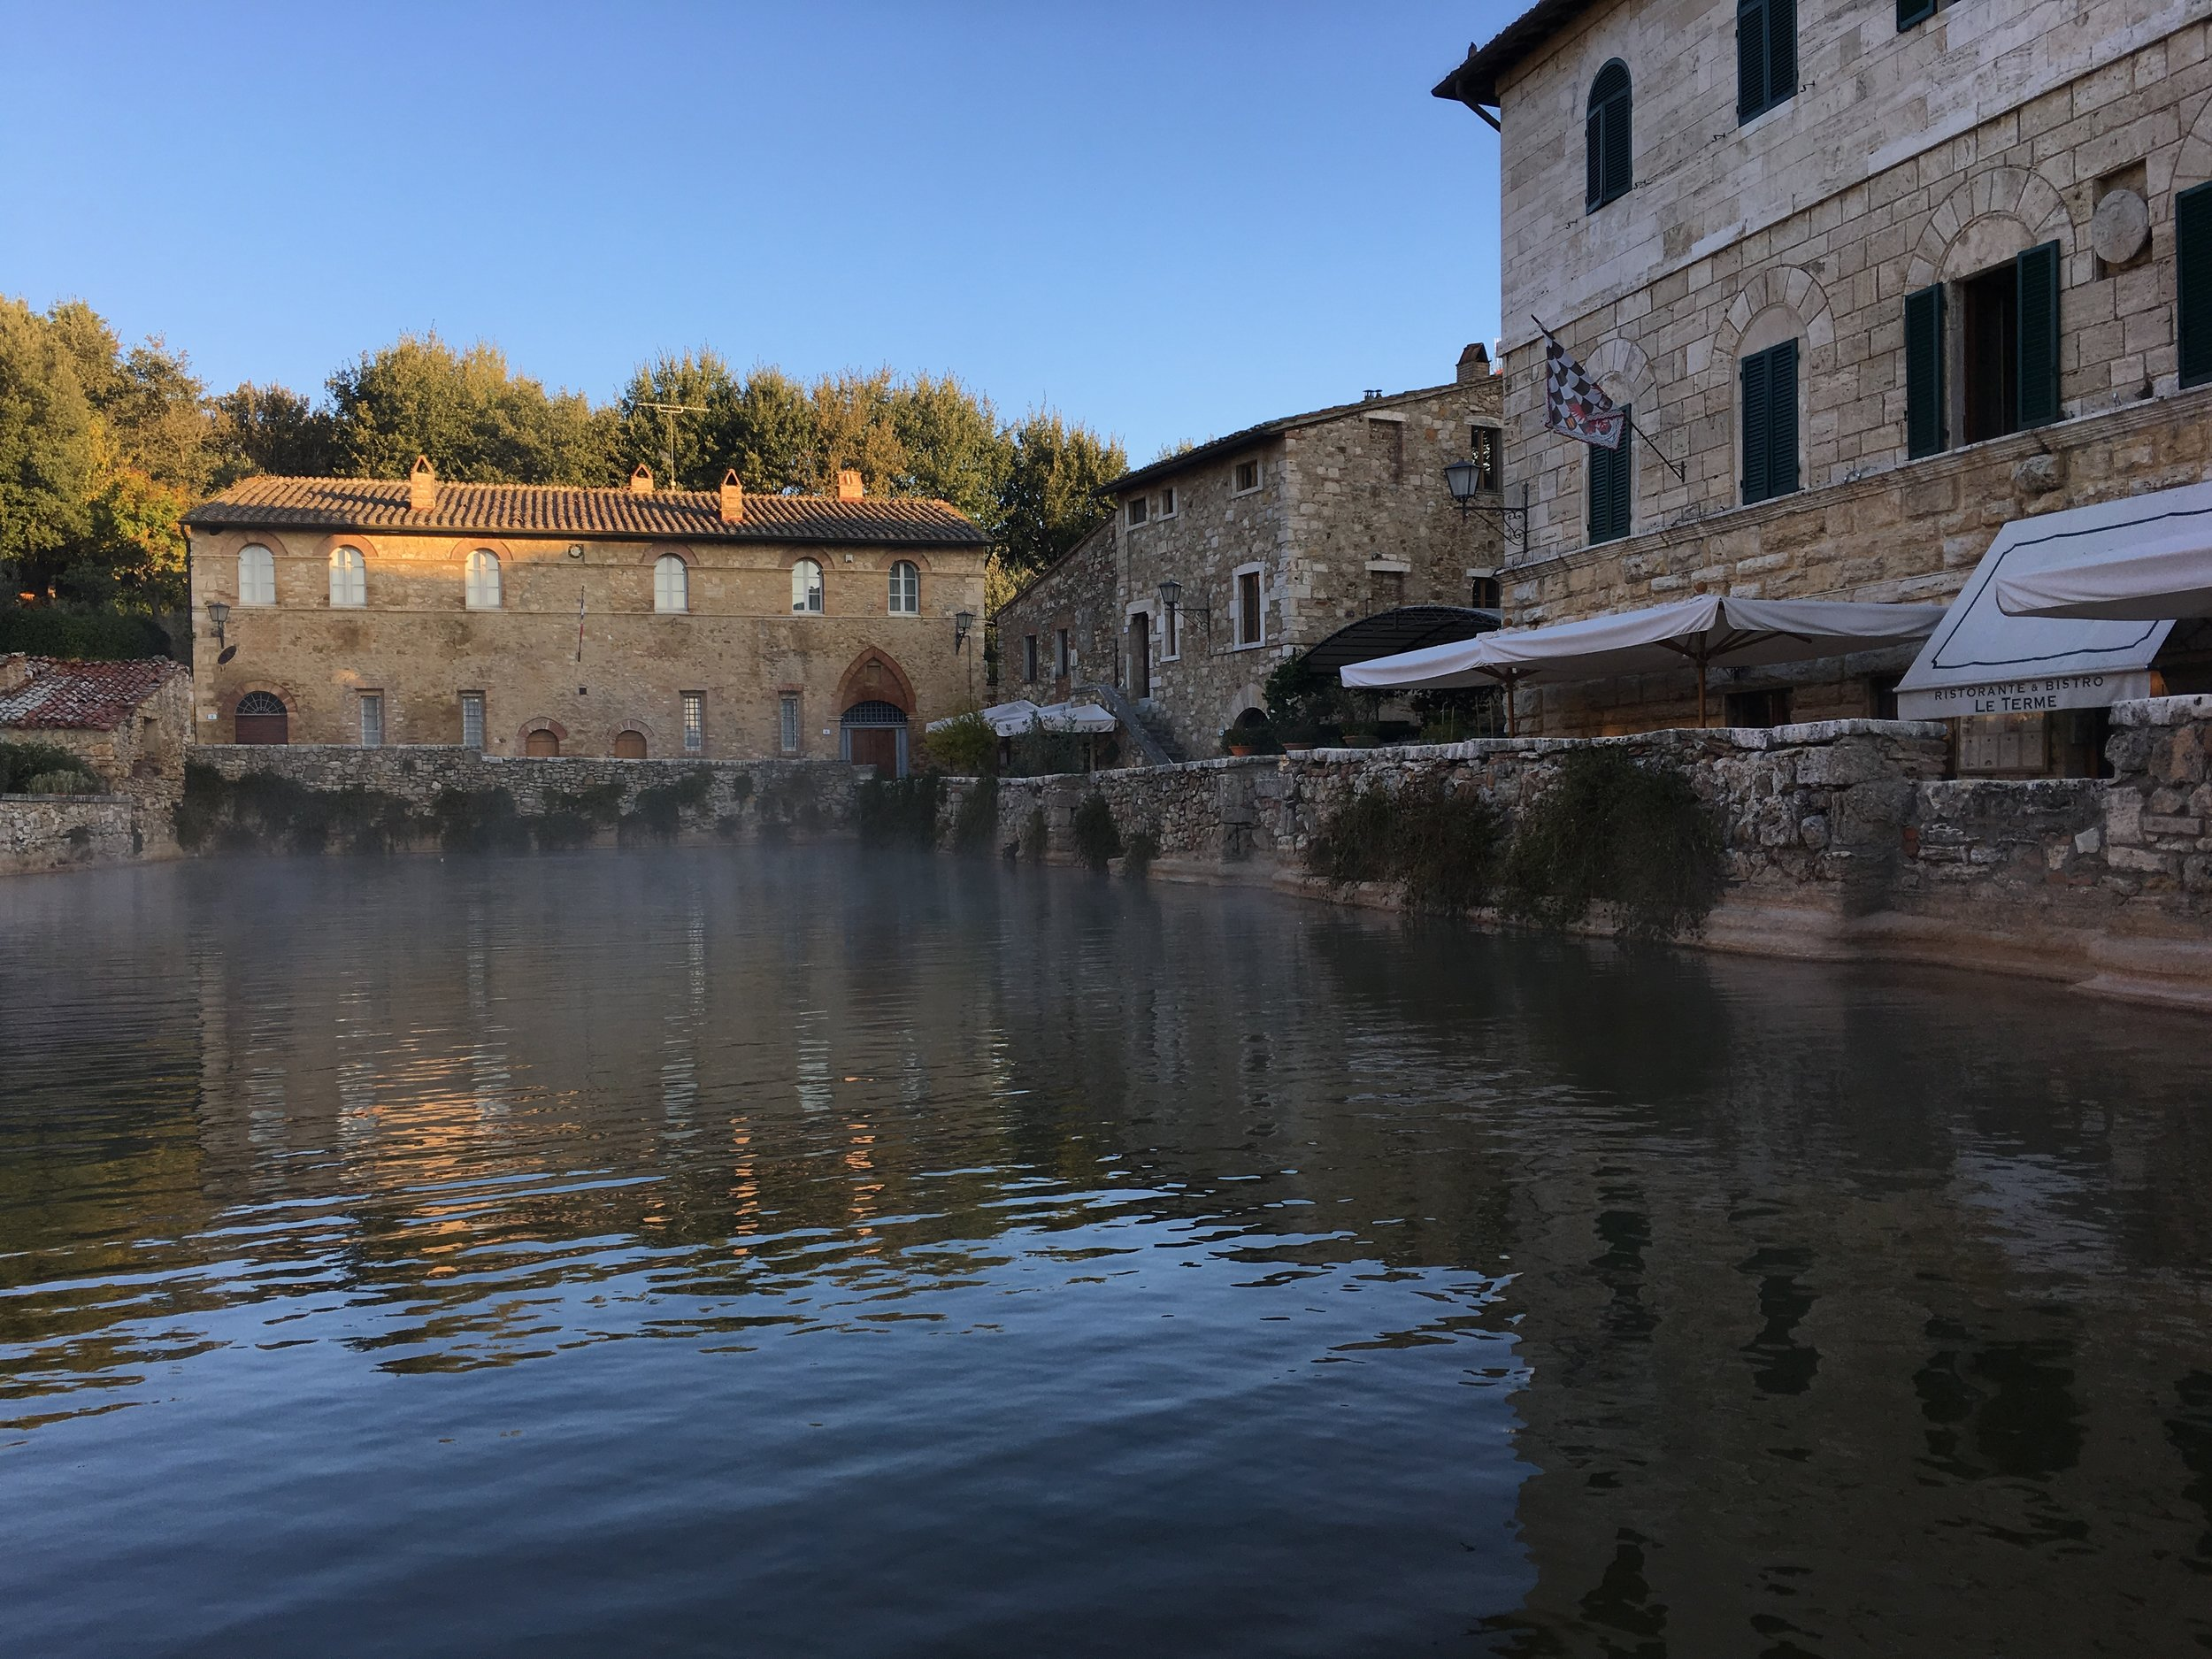 Bagno Vignoni- a great place to relax